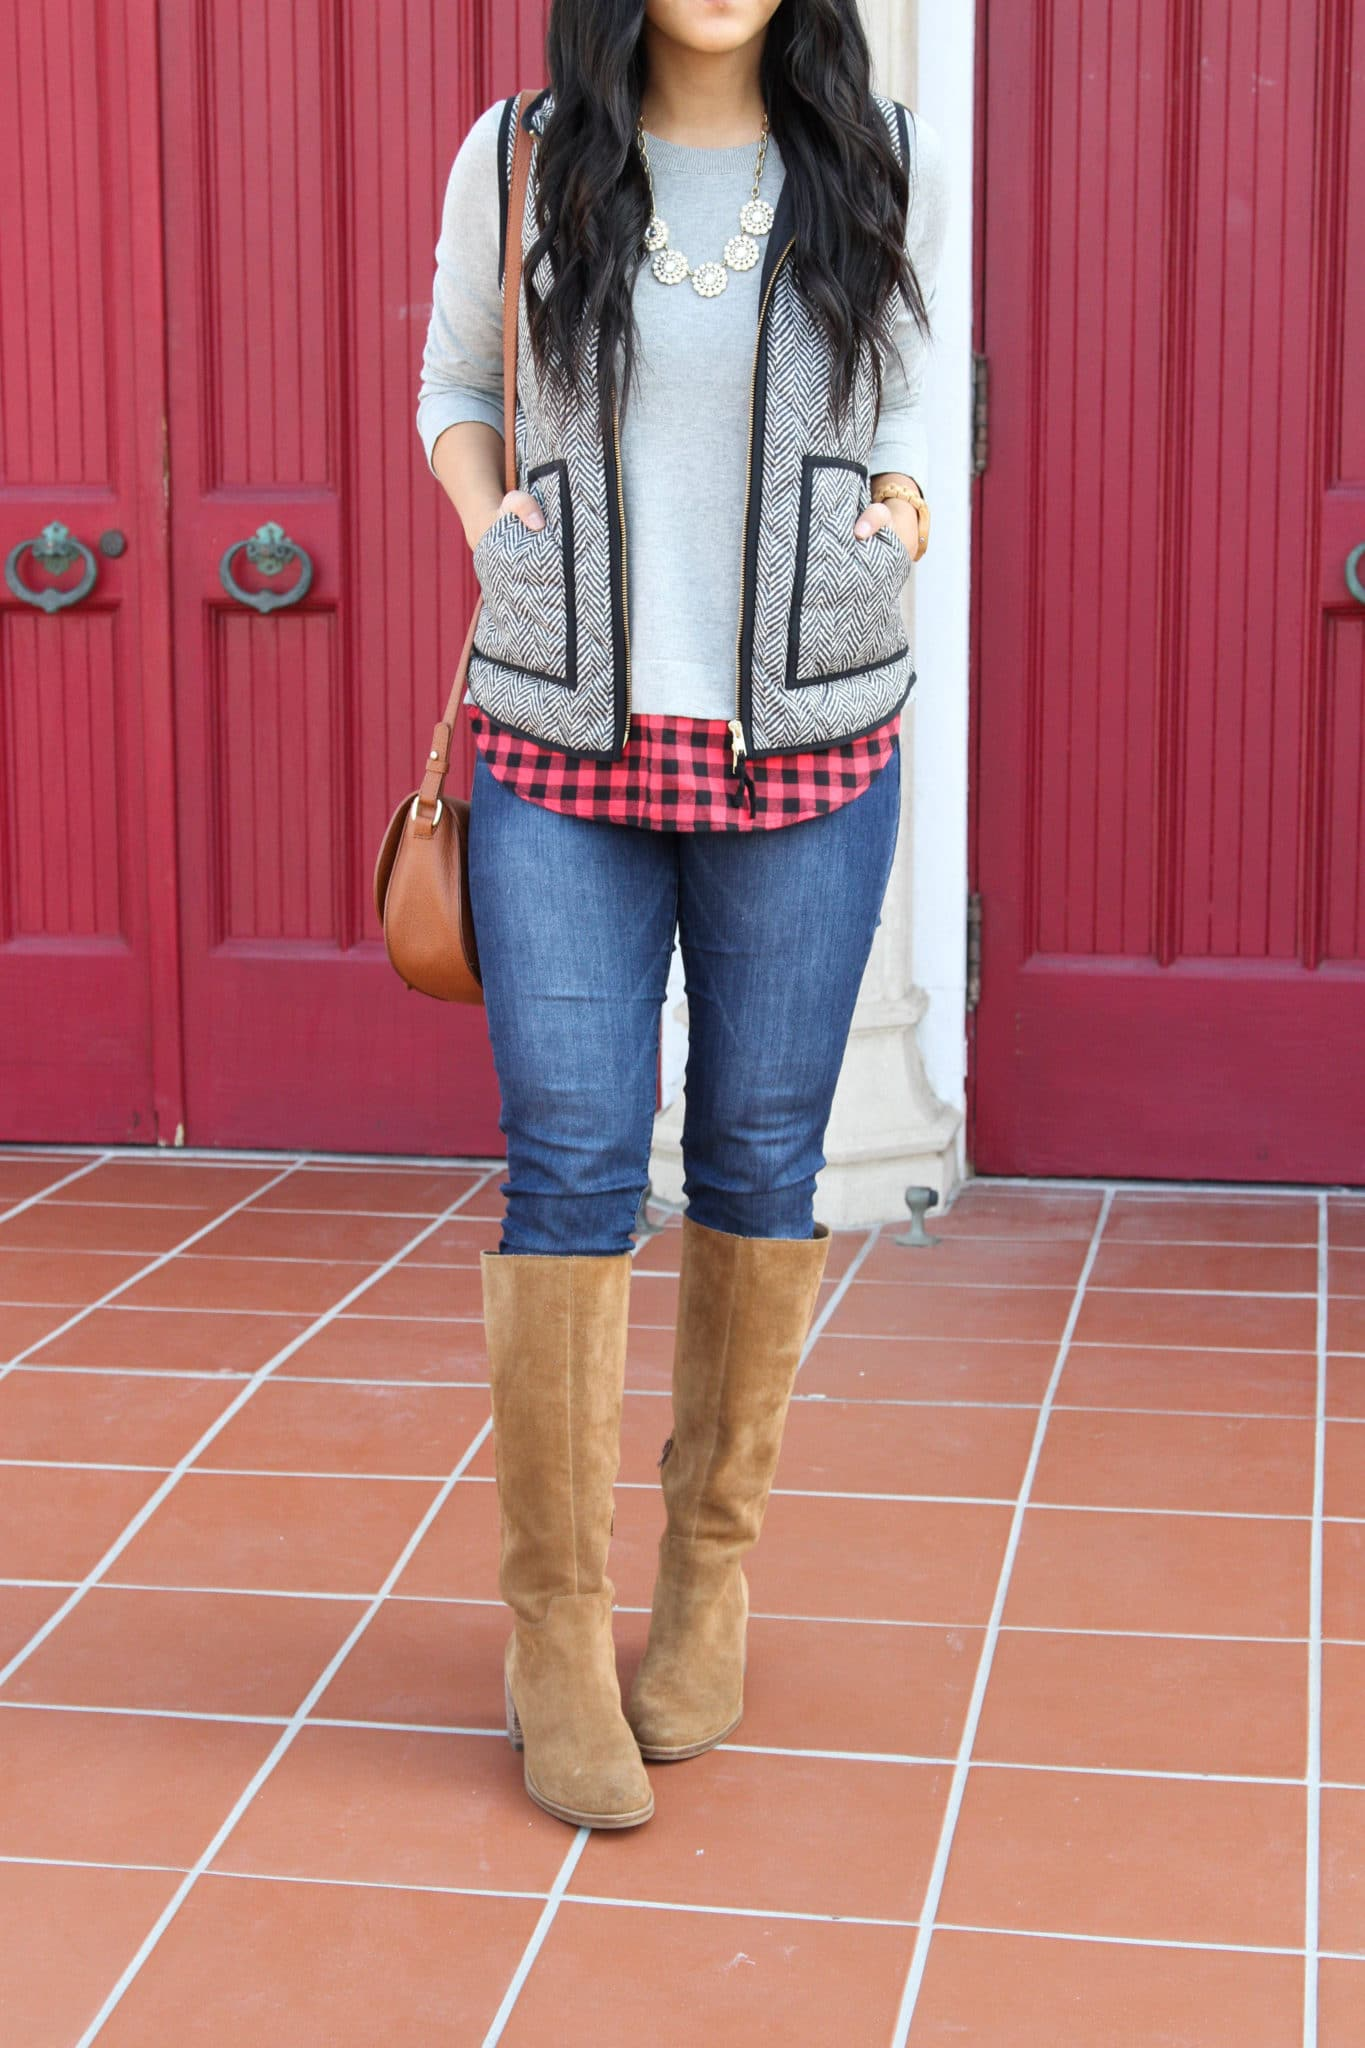 Herringbone Vest + Grey Sweater Buffalo Check + Riding Boots + Brown Bag + Statement Necklace